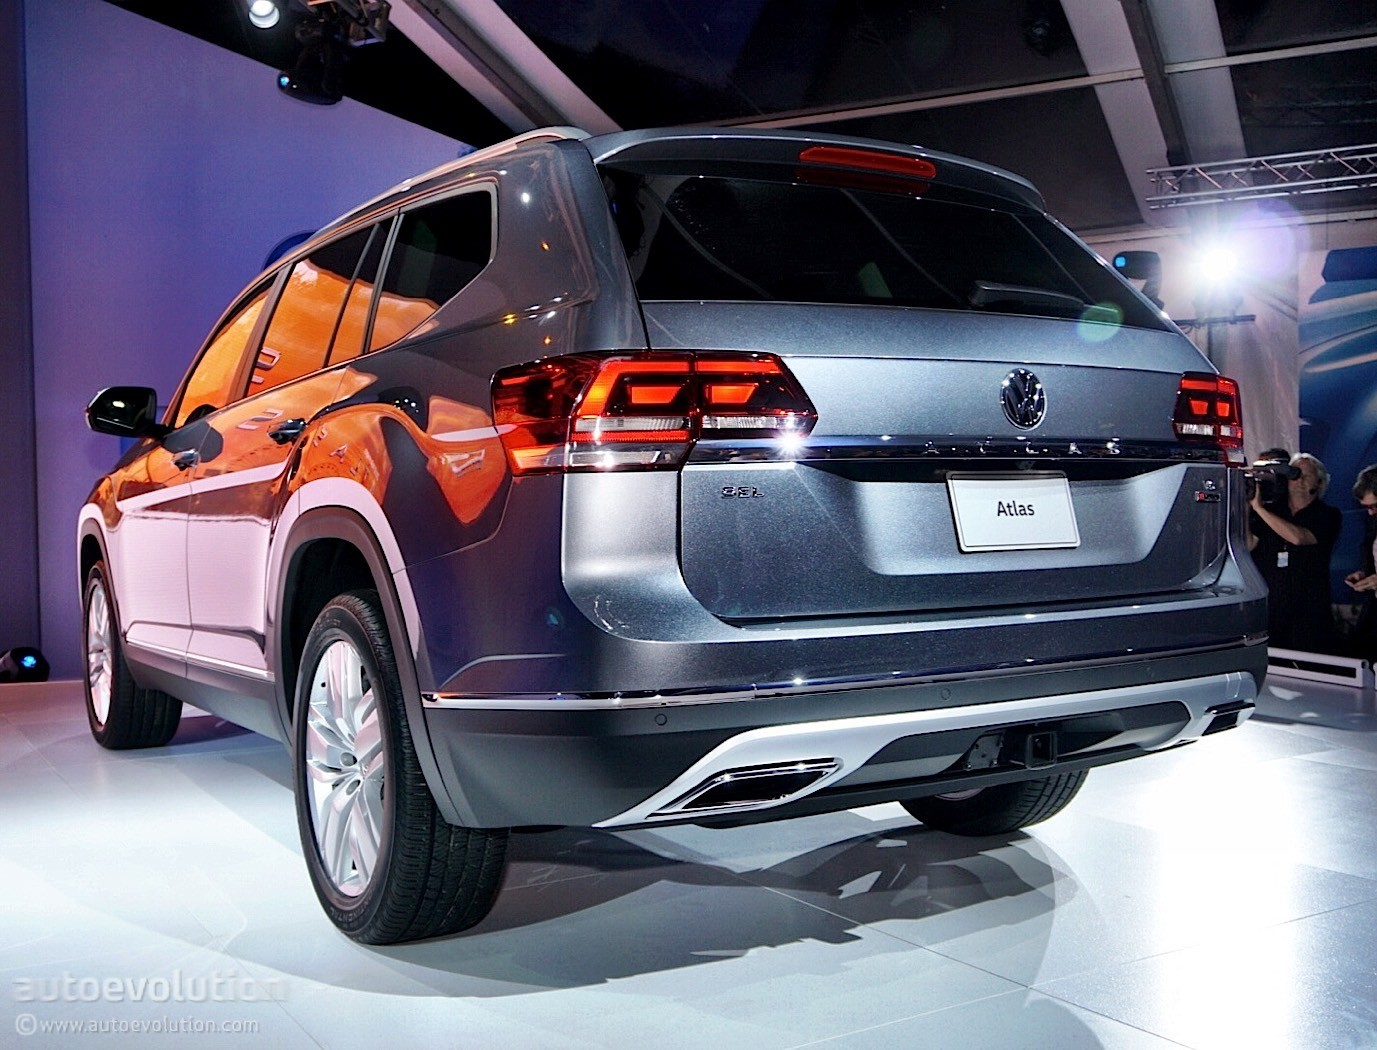 Volkswagen Atlas Enters Production In Chattanooga Autoevolution - Car show chattanooga 2018